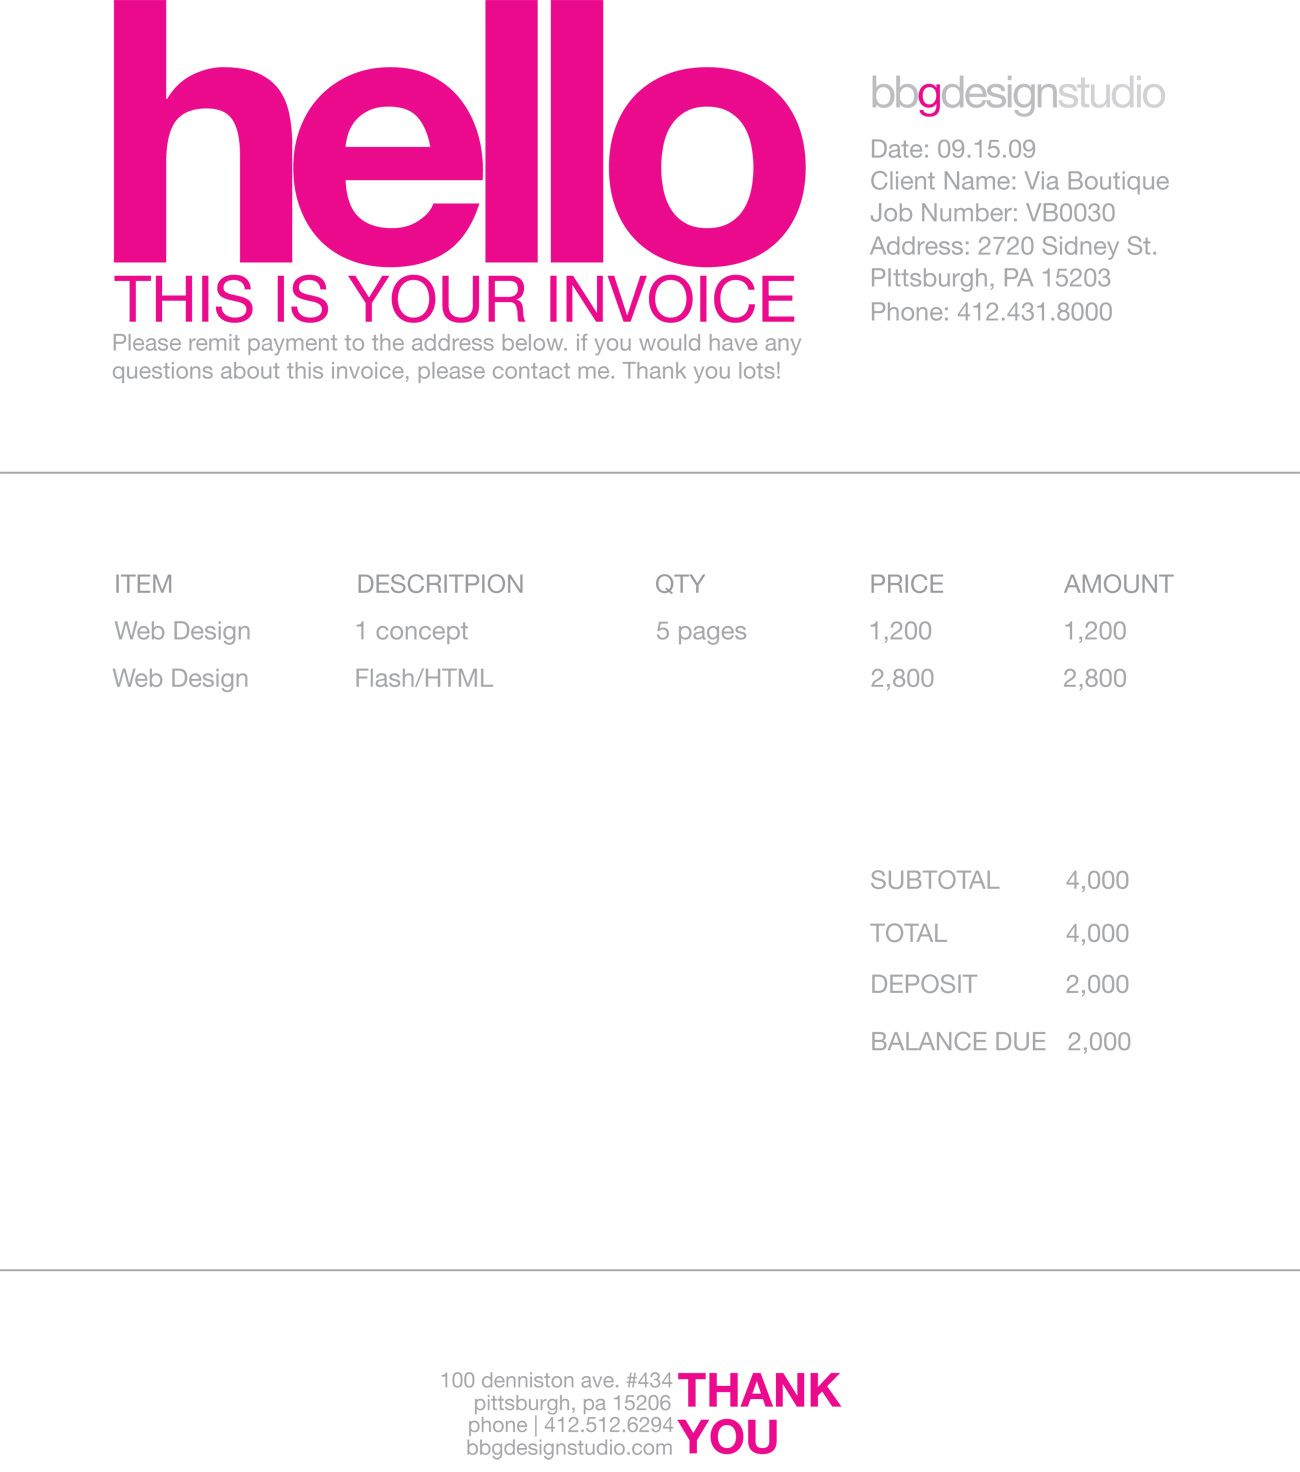 Aaaaeroincus  Scenic  Images About Invoice Design On Pinterest With Exciting Free Downloadable Invoice Template For Word Besides Printable Invoices Free Furthermore How To Pay Ebay Invoice With Delectable Invoice Price By Vin Also Sample Invoice Form In Addition Apple Invoice And Invoice Vs Statement As Well As Dealer Invoice Vs Msrp Additionally Quickbooks Email Invoices From Pinterestcom With Aaaaeroincus  Exciting  Images About Invoice Design On Pinterest With Delectable Free Downloadable Invoice Template For Word Besides Printable Invoices Free Furthermore How To Pay Ebay Invoice And Scenic Invoice Price By Vin Also Sample Invoice Form In Addition Apple Invoice From Pinterestcom